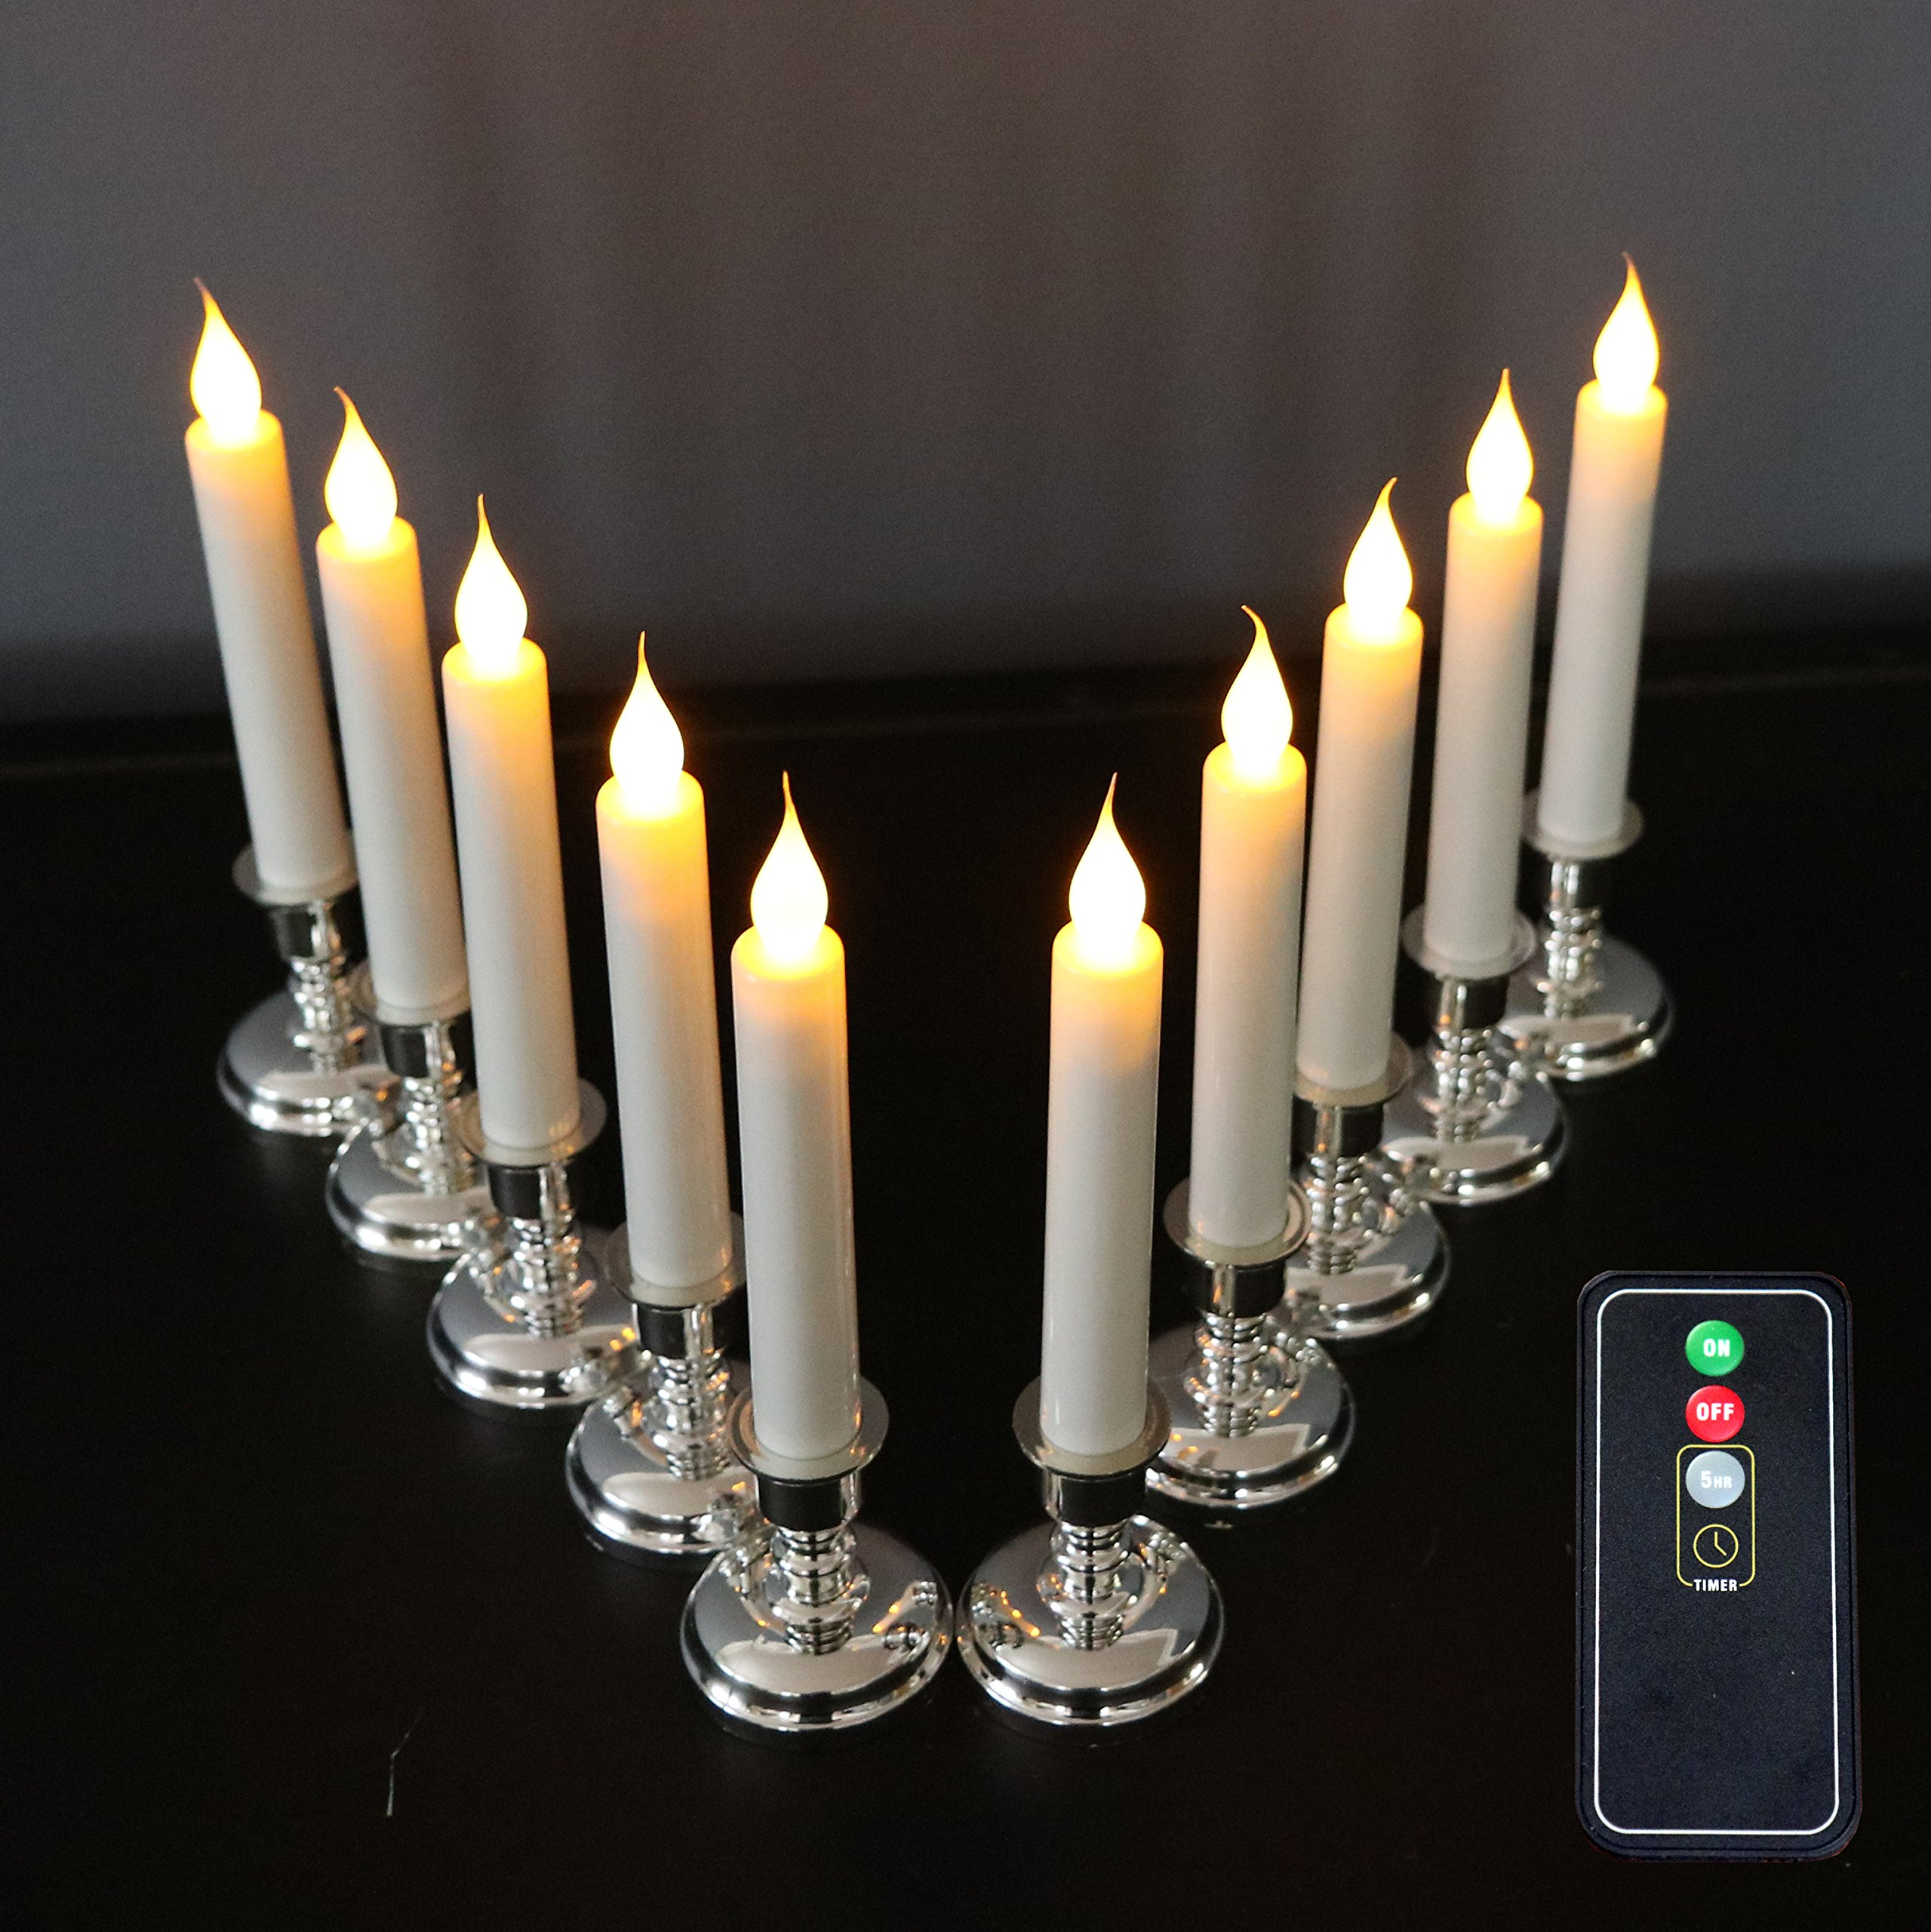 Set of 10 Flameless White Taper Window Candles with Removable Silver Candleholders with Timer and Remote, Batteries Included by Enchanted Spaces (Image #8)